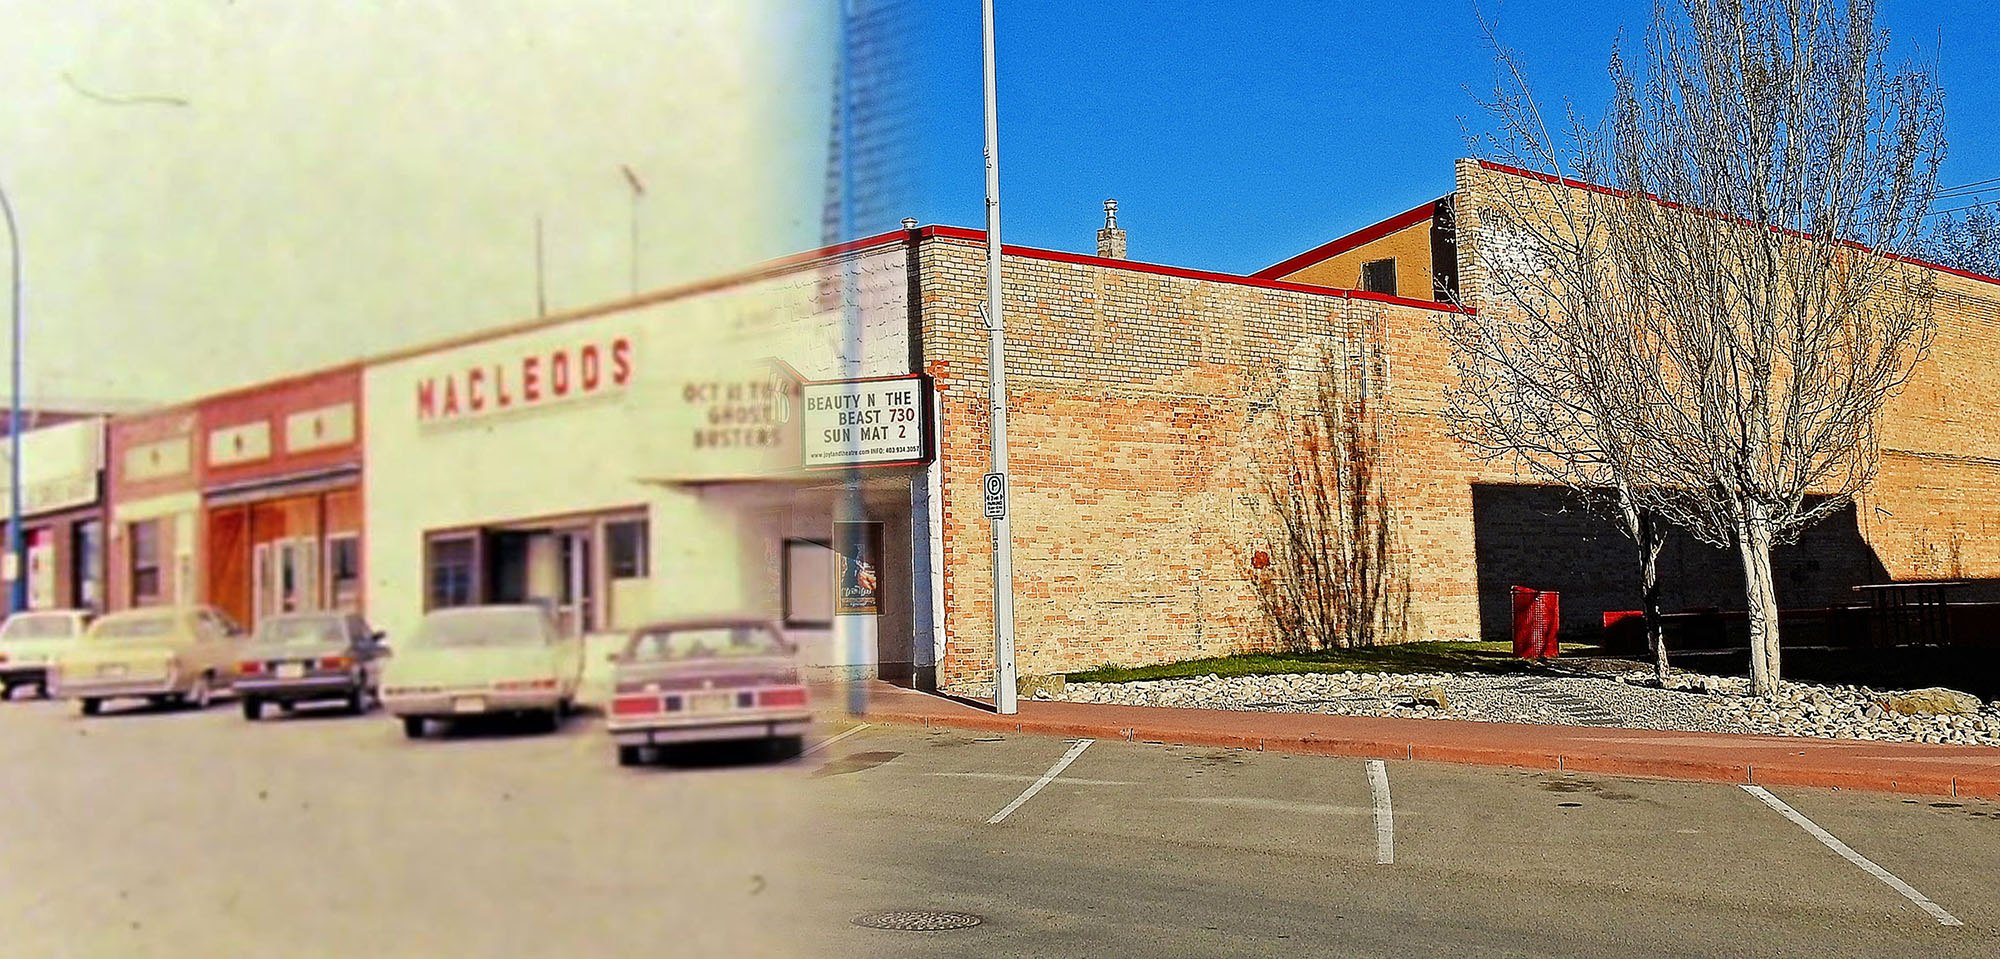 Cars are parked outside the businesses along Main Street in the 1980s (Town of Strathmore/On This Spot)